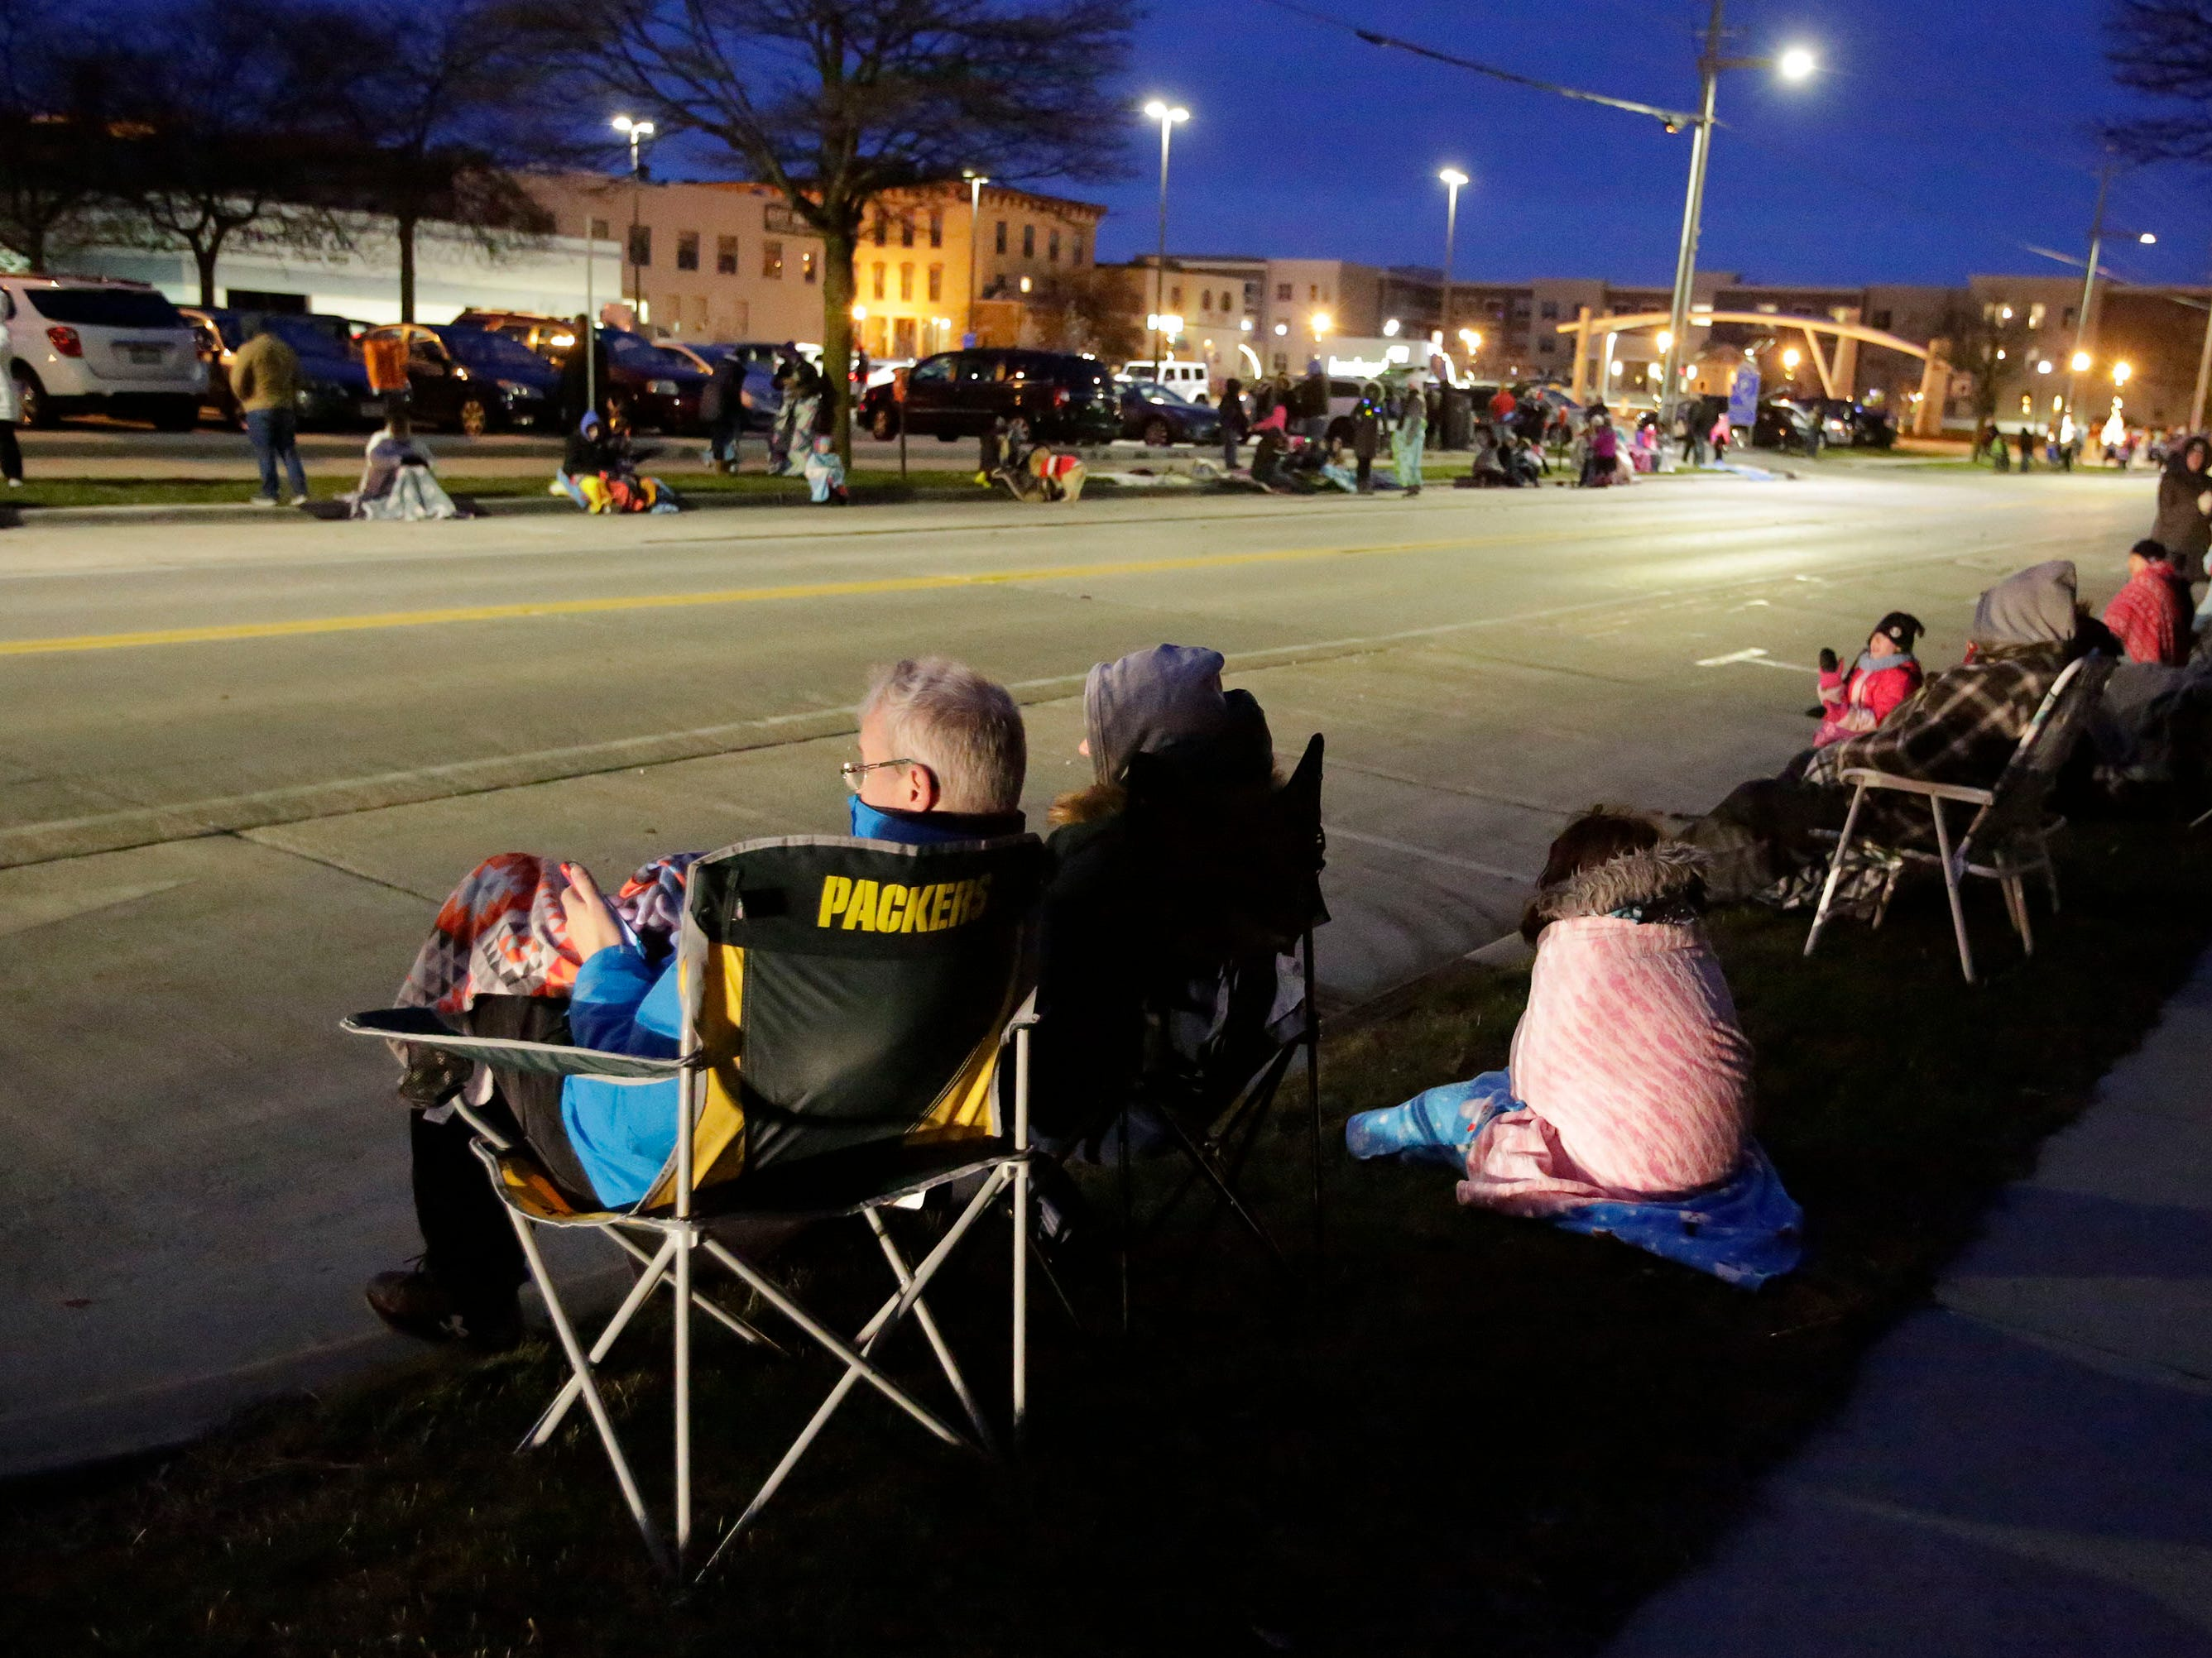 People line North 8th Street in preparation for the 26th Annual Jaycees Holiday Parade, Sunday, November 25, 2018 in Sheboygan, Wis.